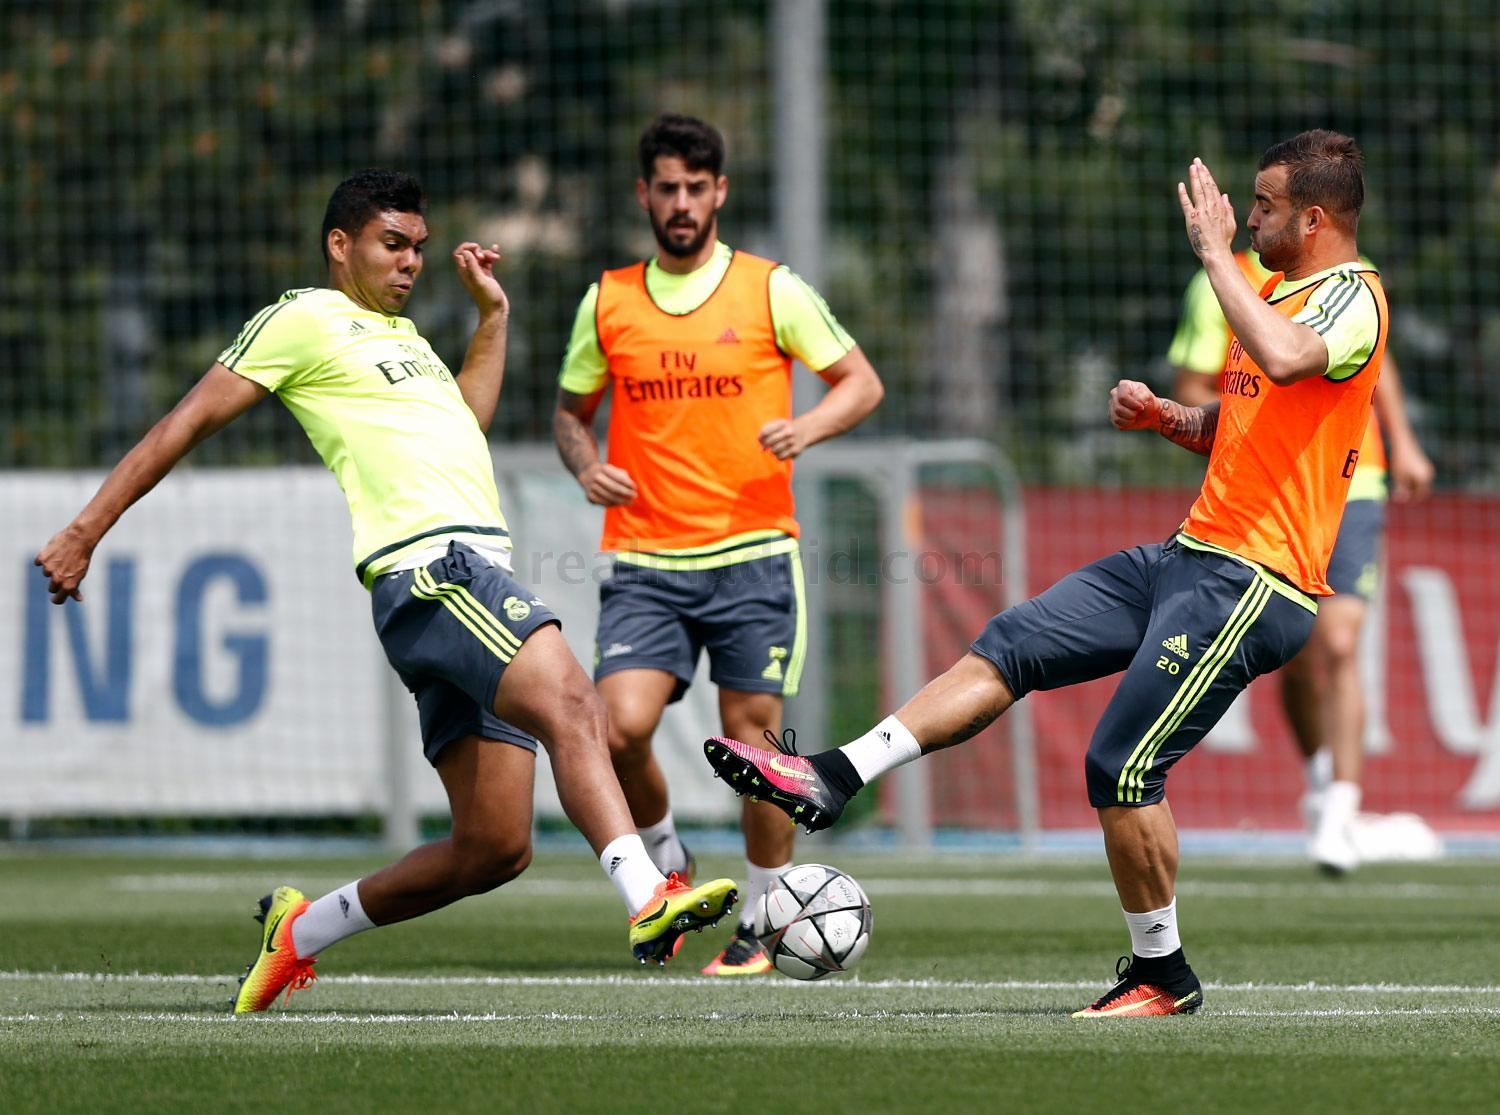 Real Madrid - Entrenamiento del Real Madrid - 26-05-2016